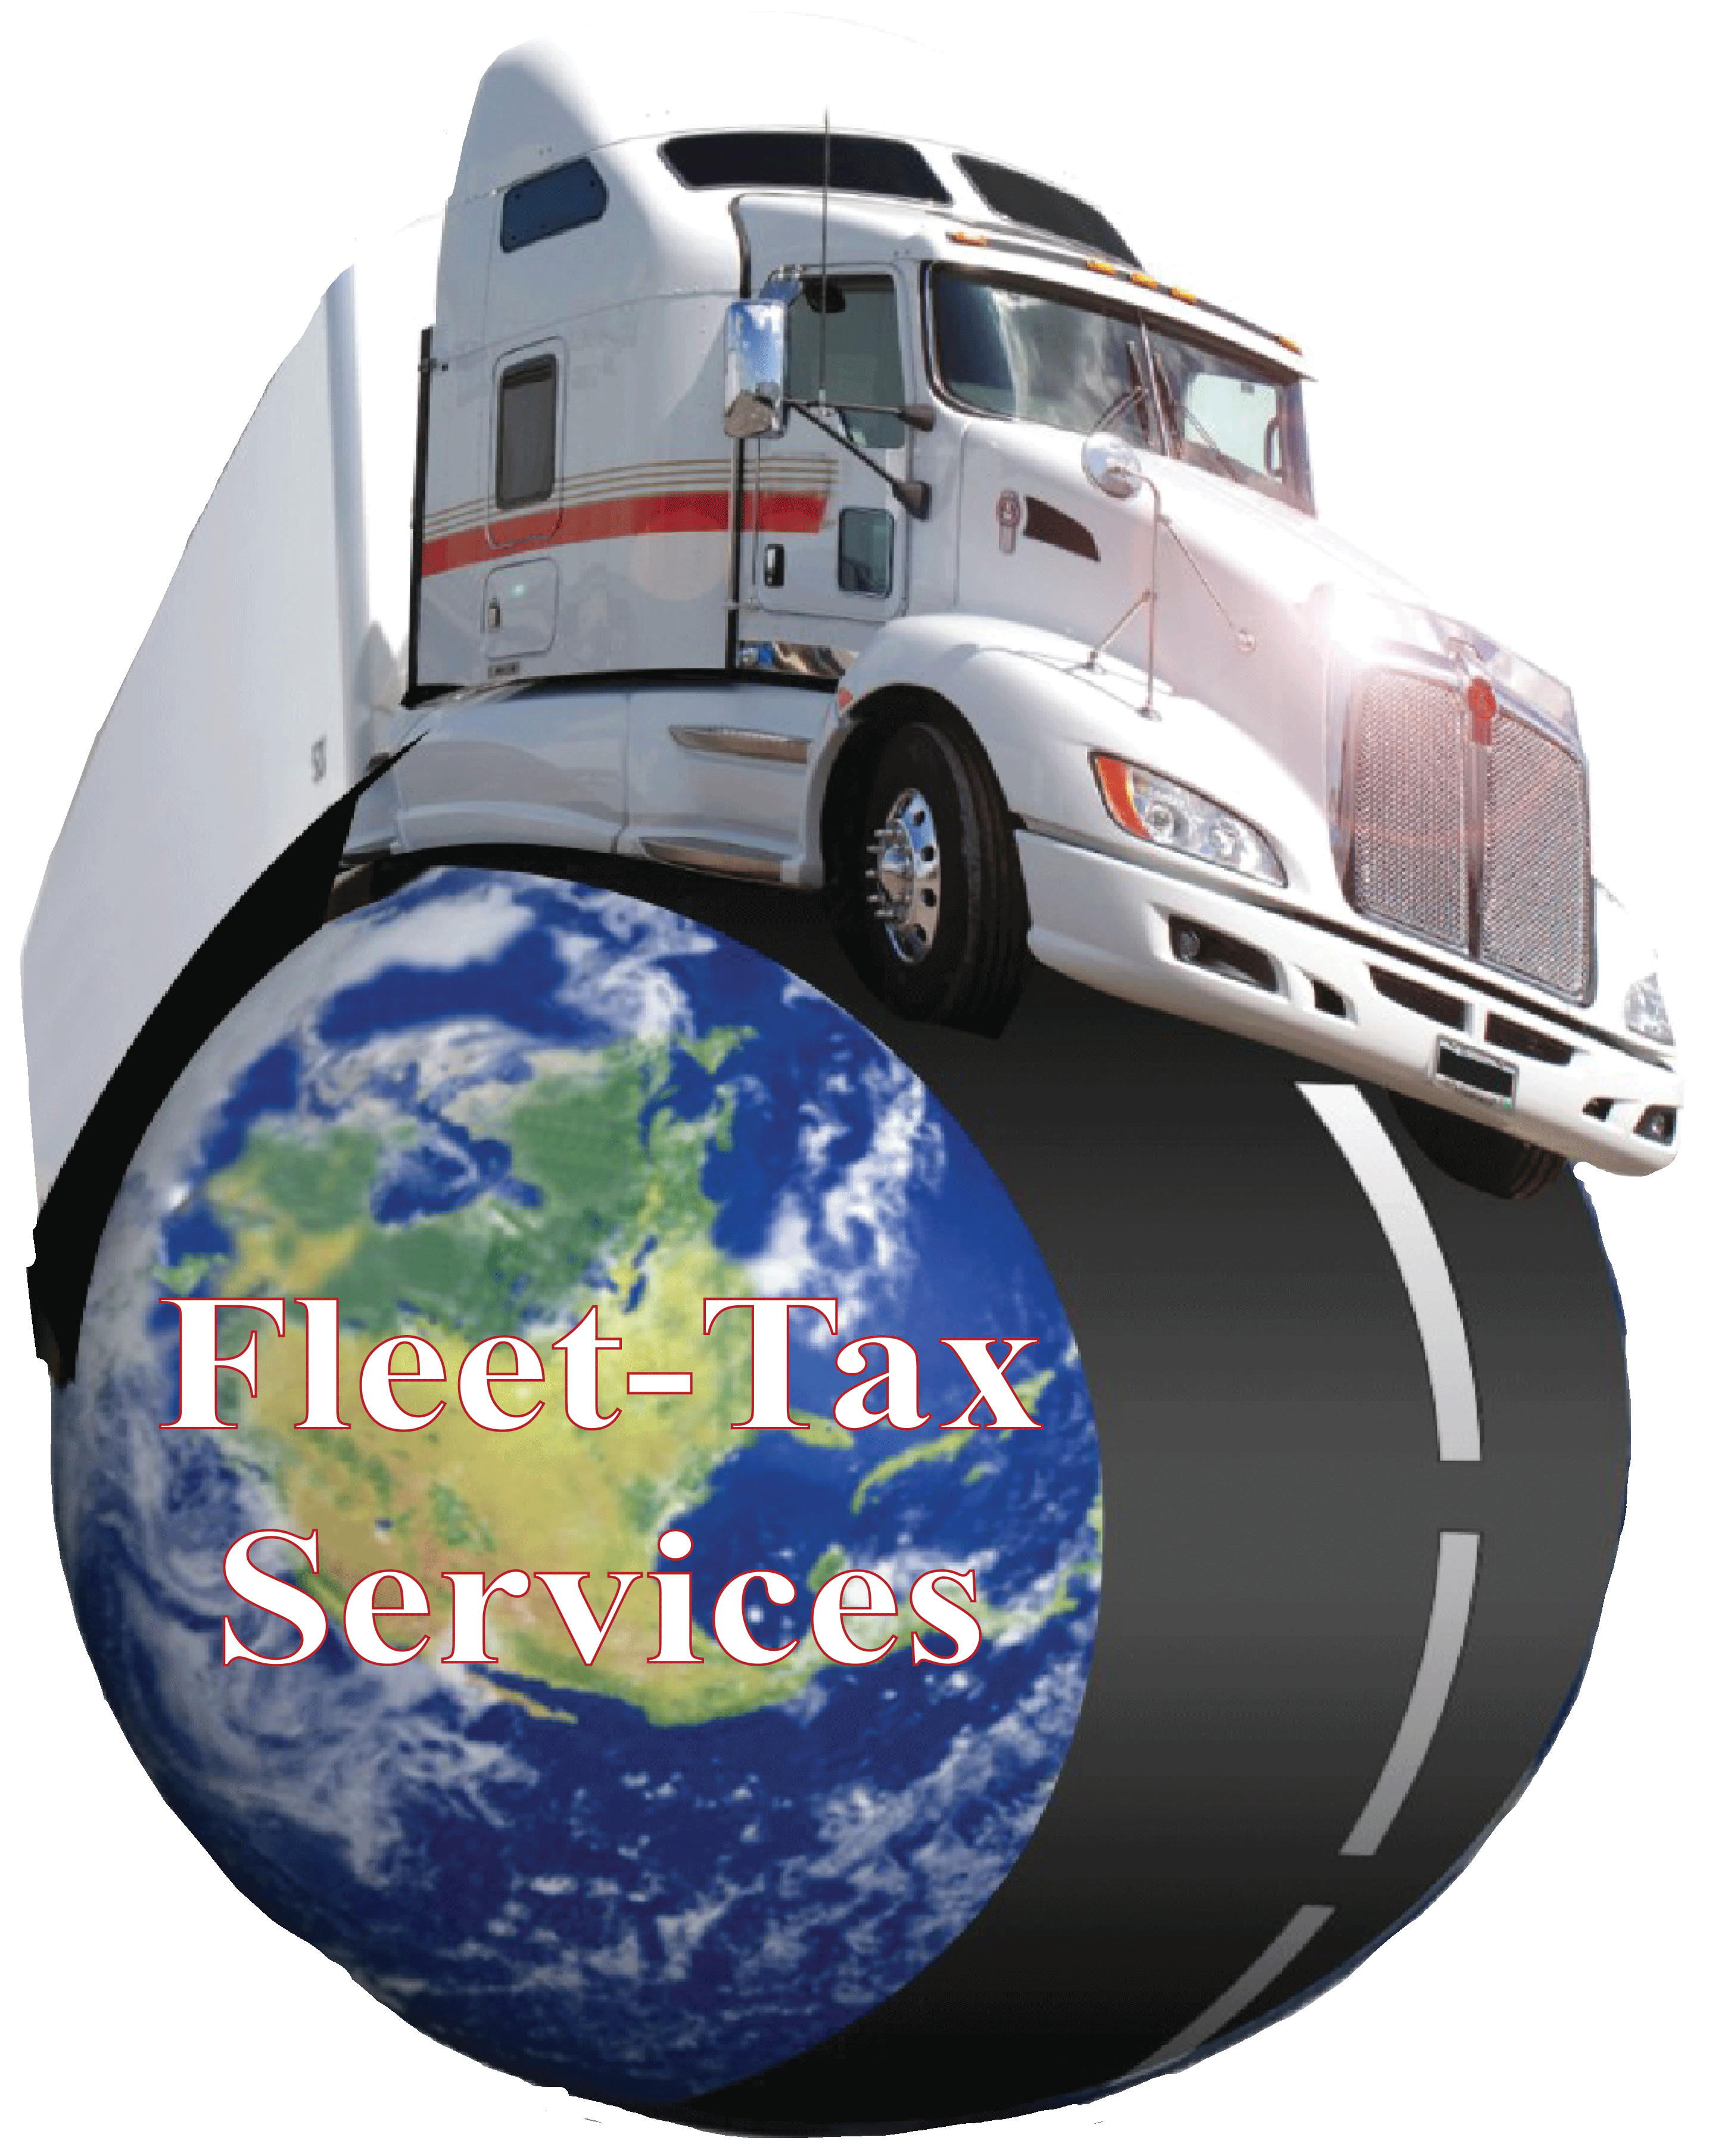 Fleet-Tax Services